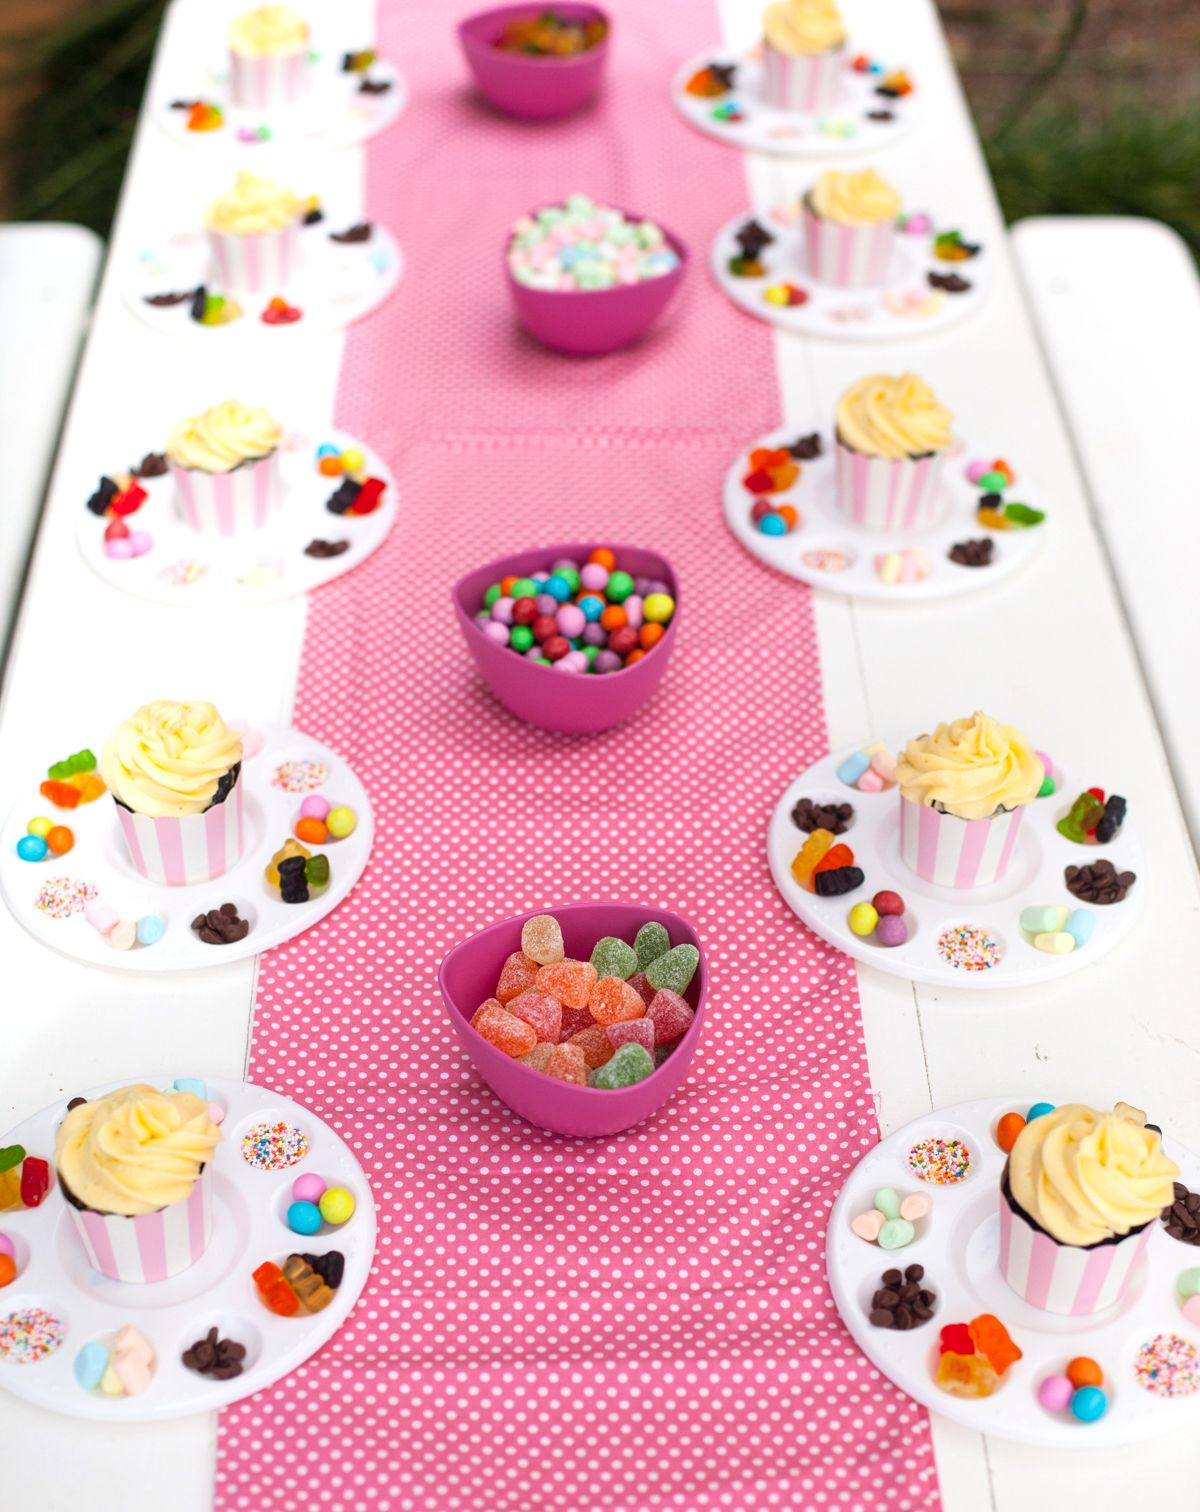 bake shoppe party activity decorate your own cupcake partygameideas bakeshoppepartyideas - Cupcake Decorating Party